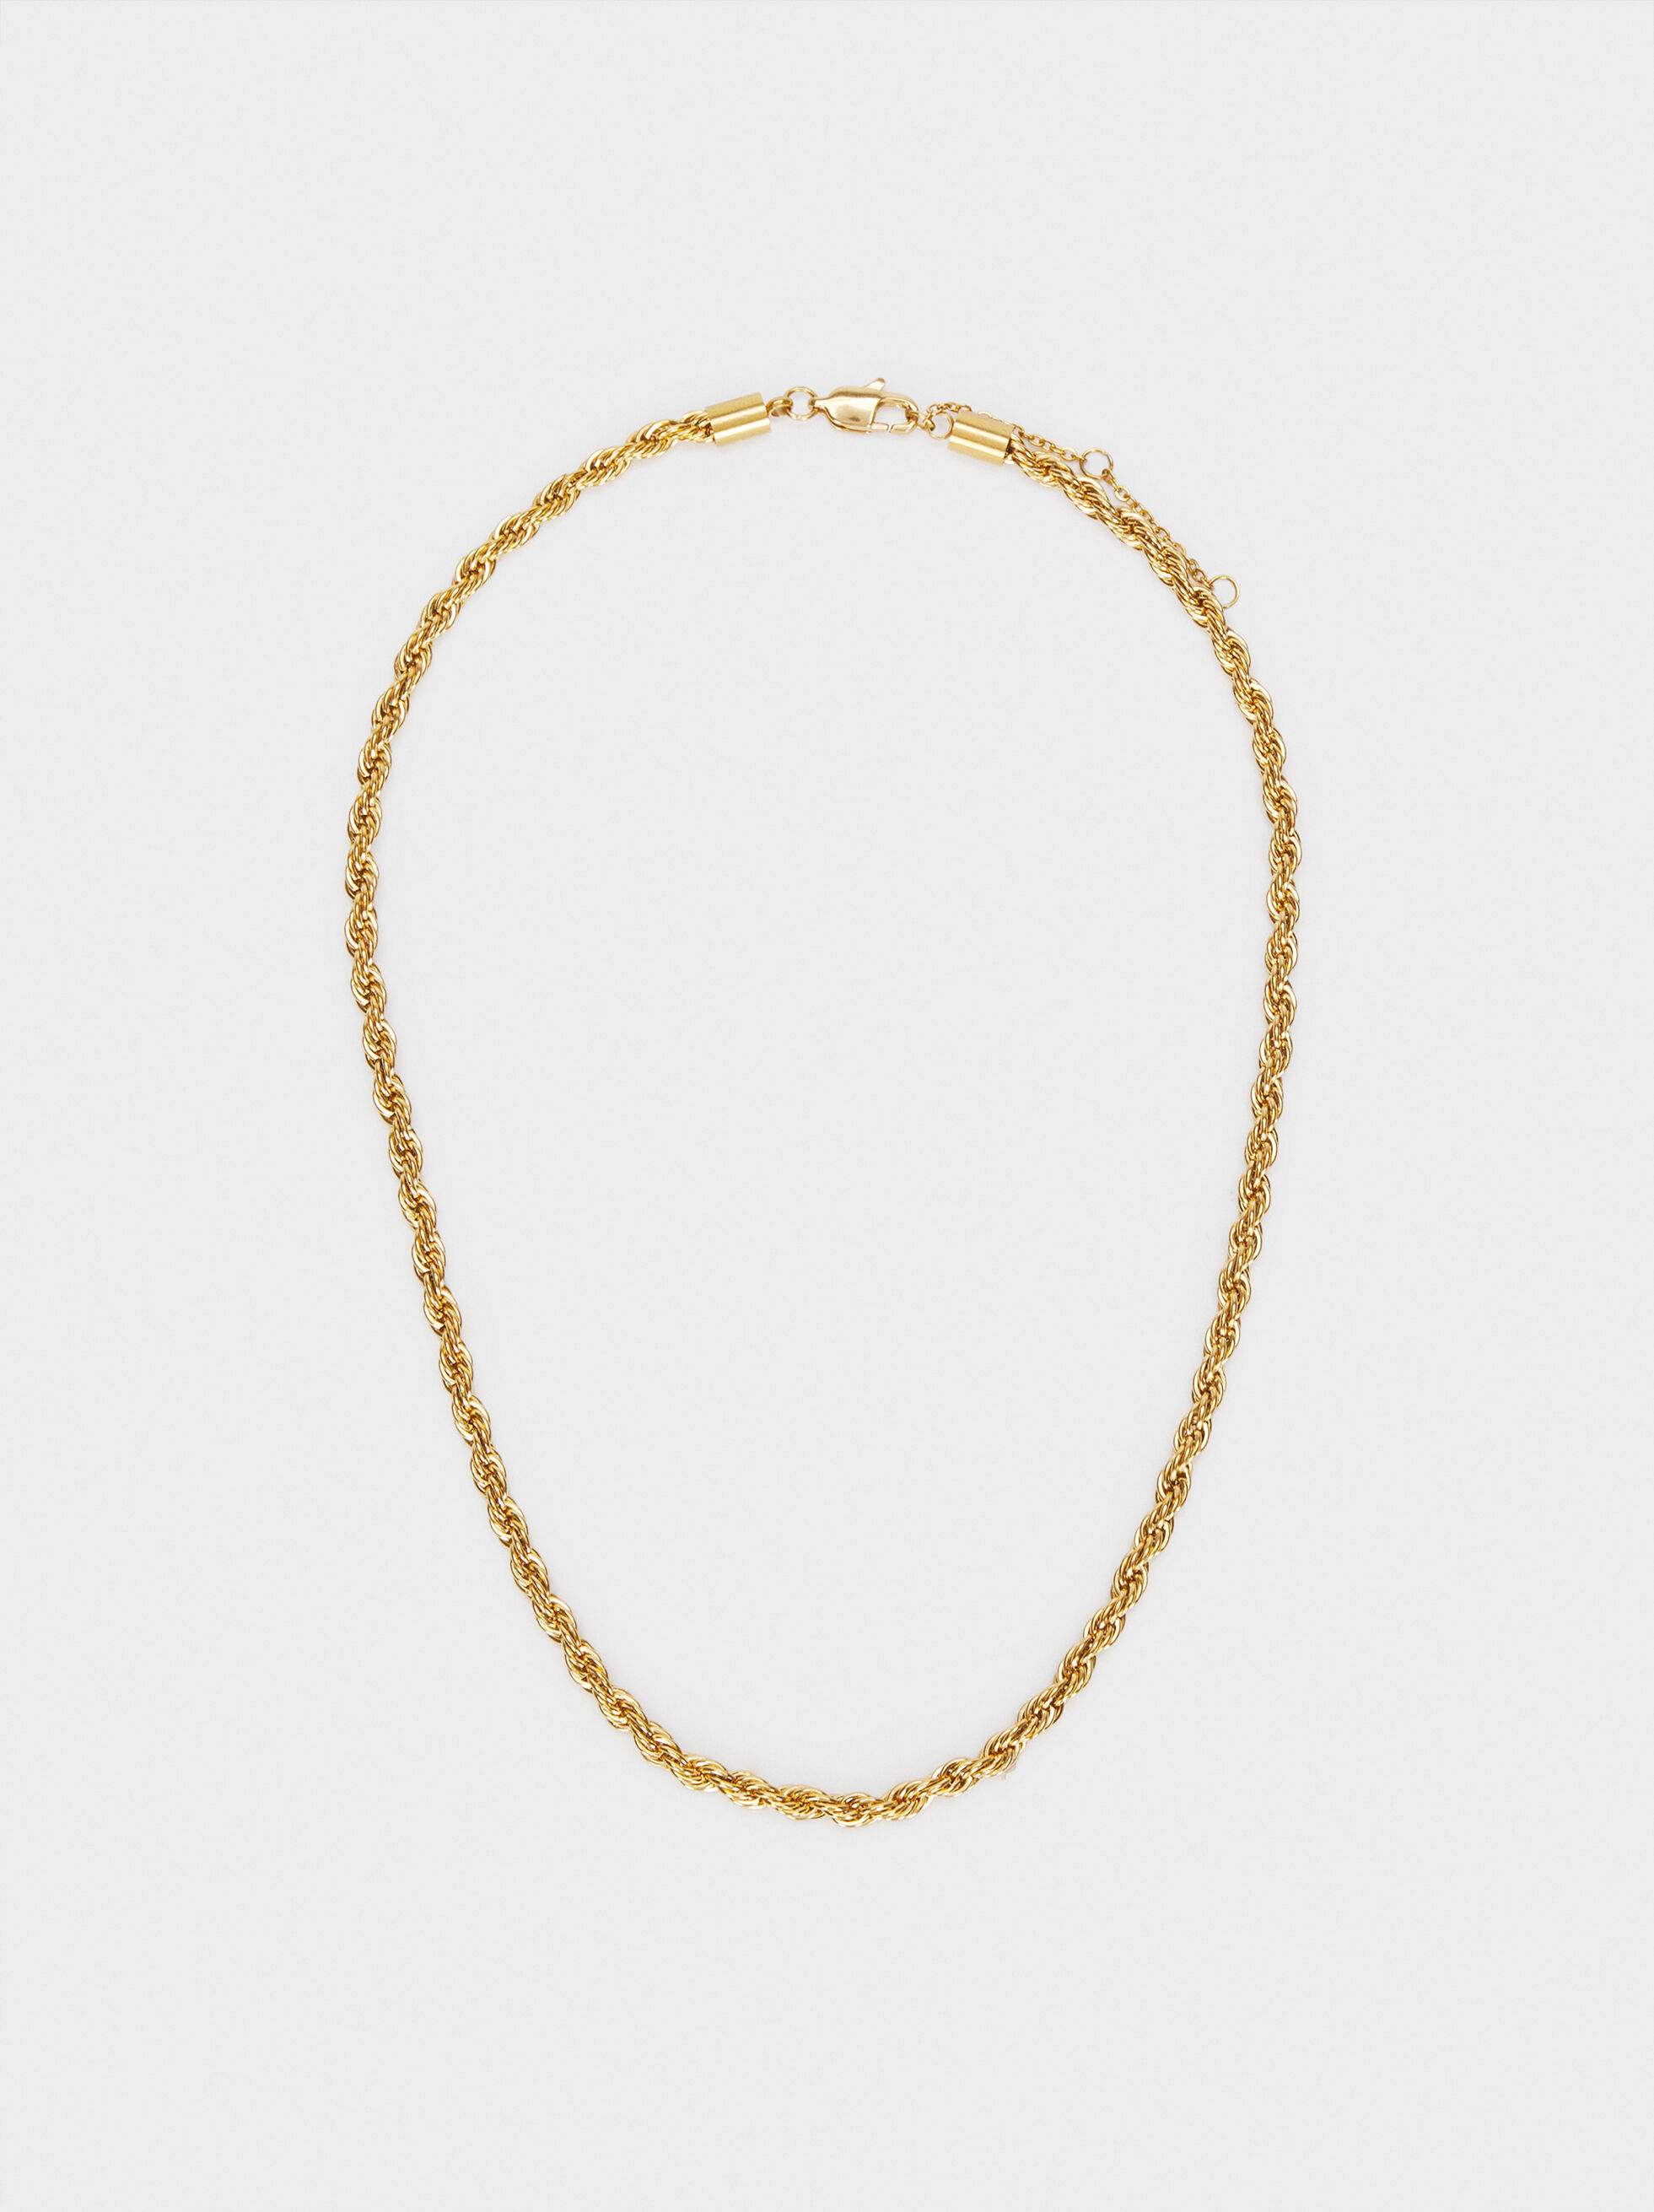 Short Golden Stainless Steel Chain Necklace, Golden, hi-res